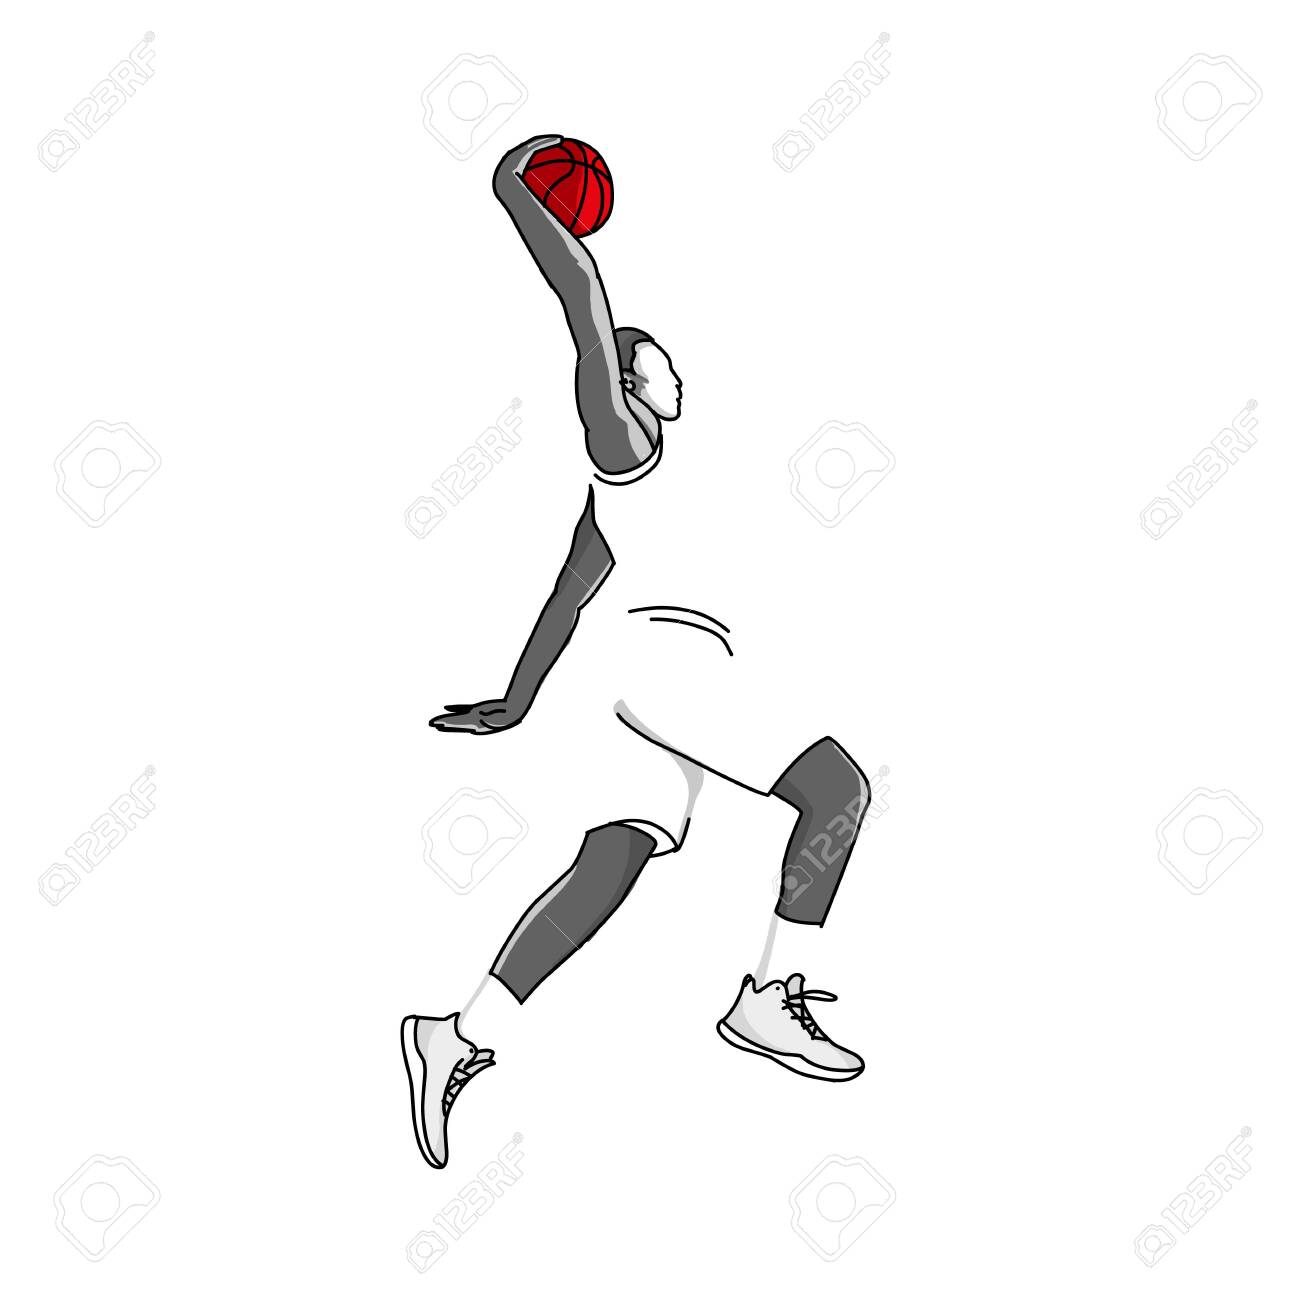 vector Basketball player jump in the air to shot with a slam dunk posture. - 130212762